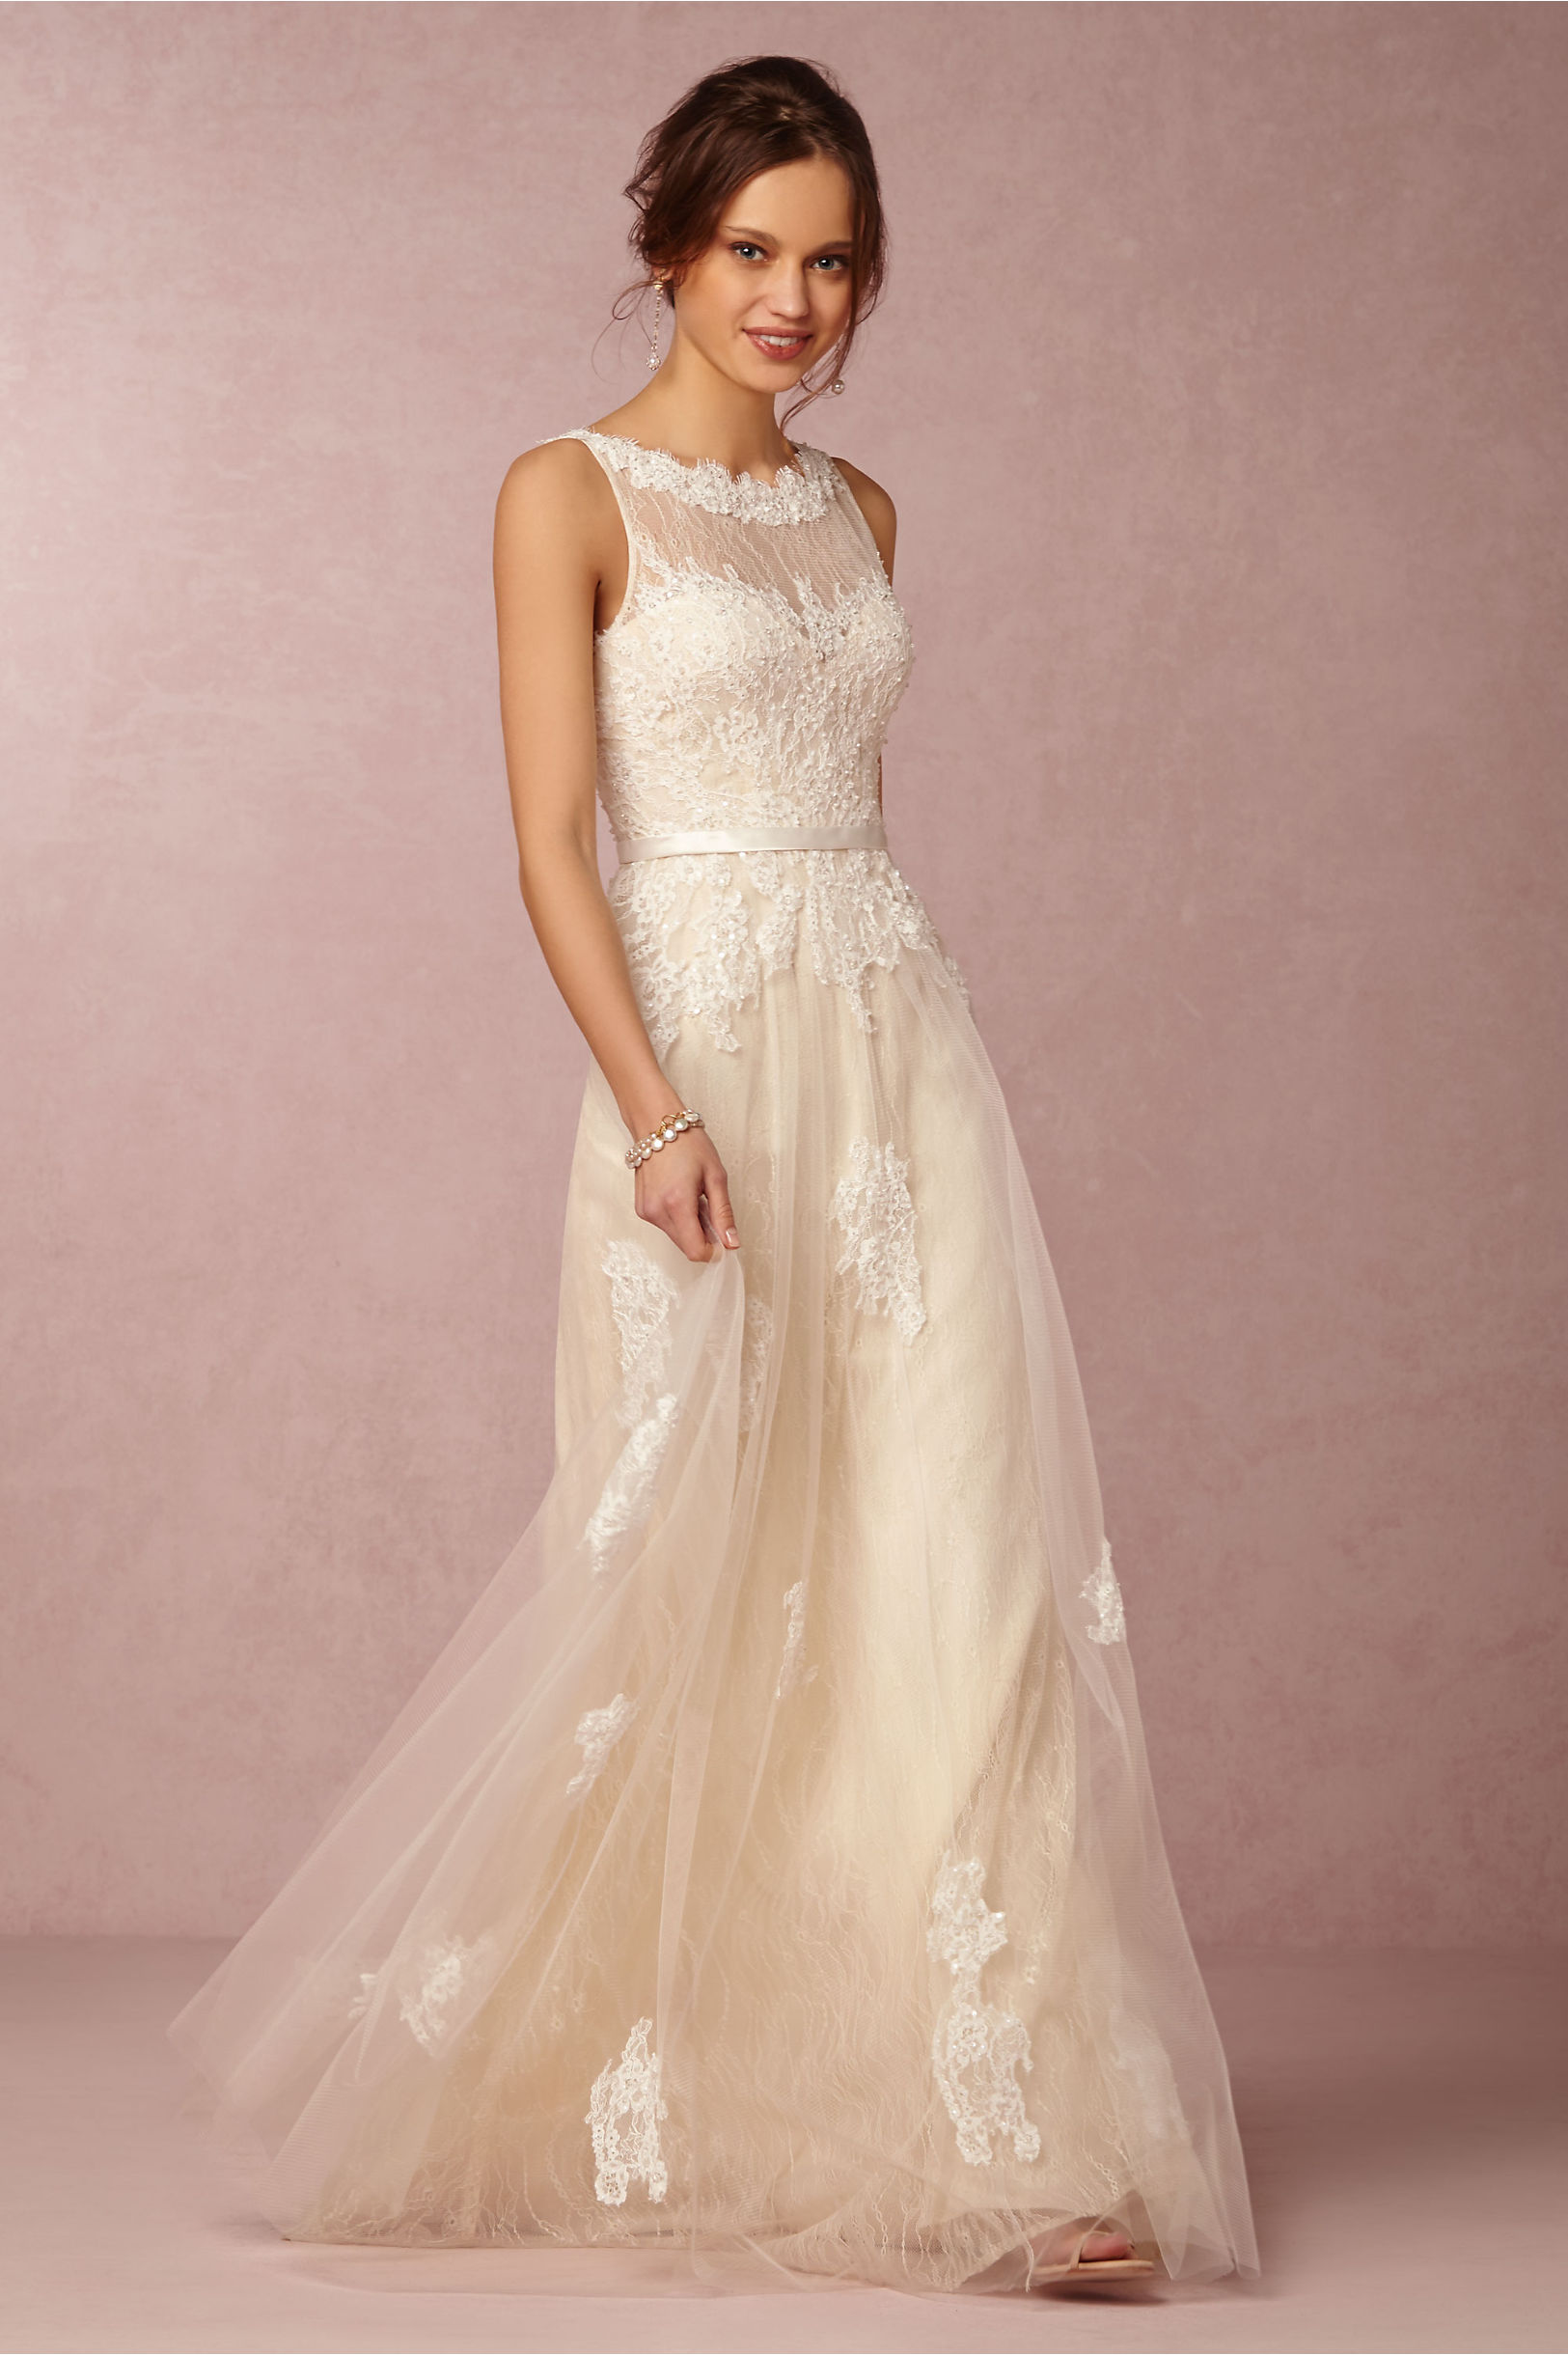 Georgia Gown in Sale | BHLDN